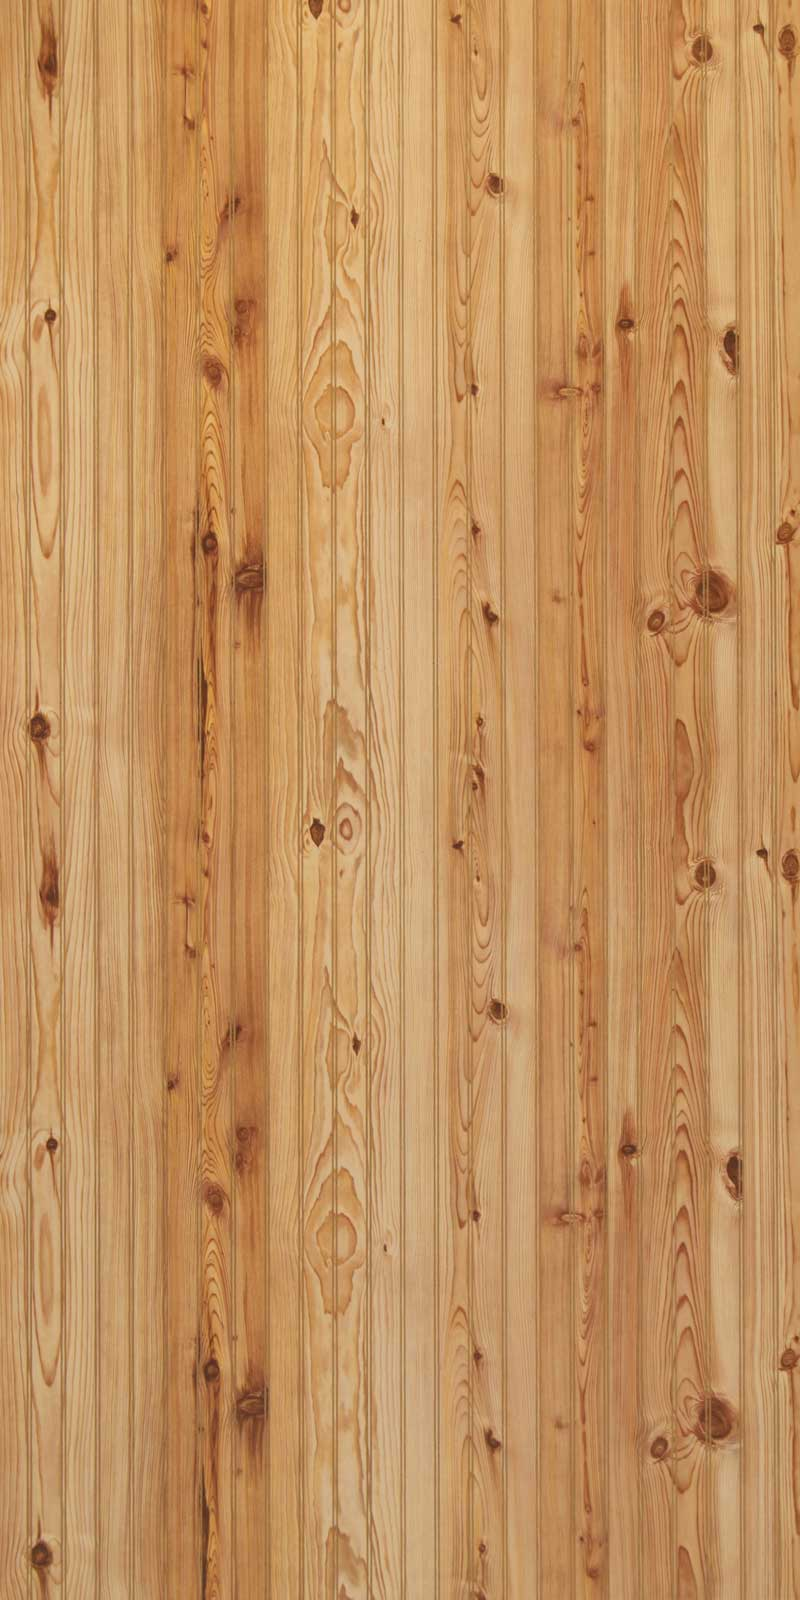 Interior Wood Paneling: Ridge Pine Wall Paneling